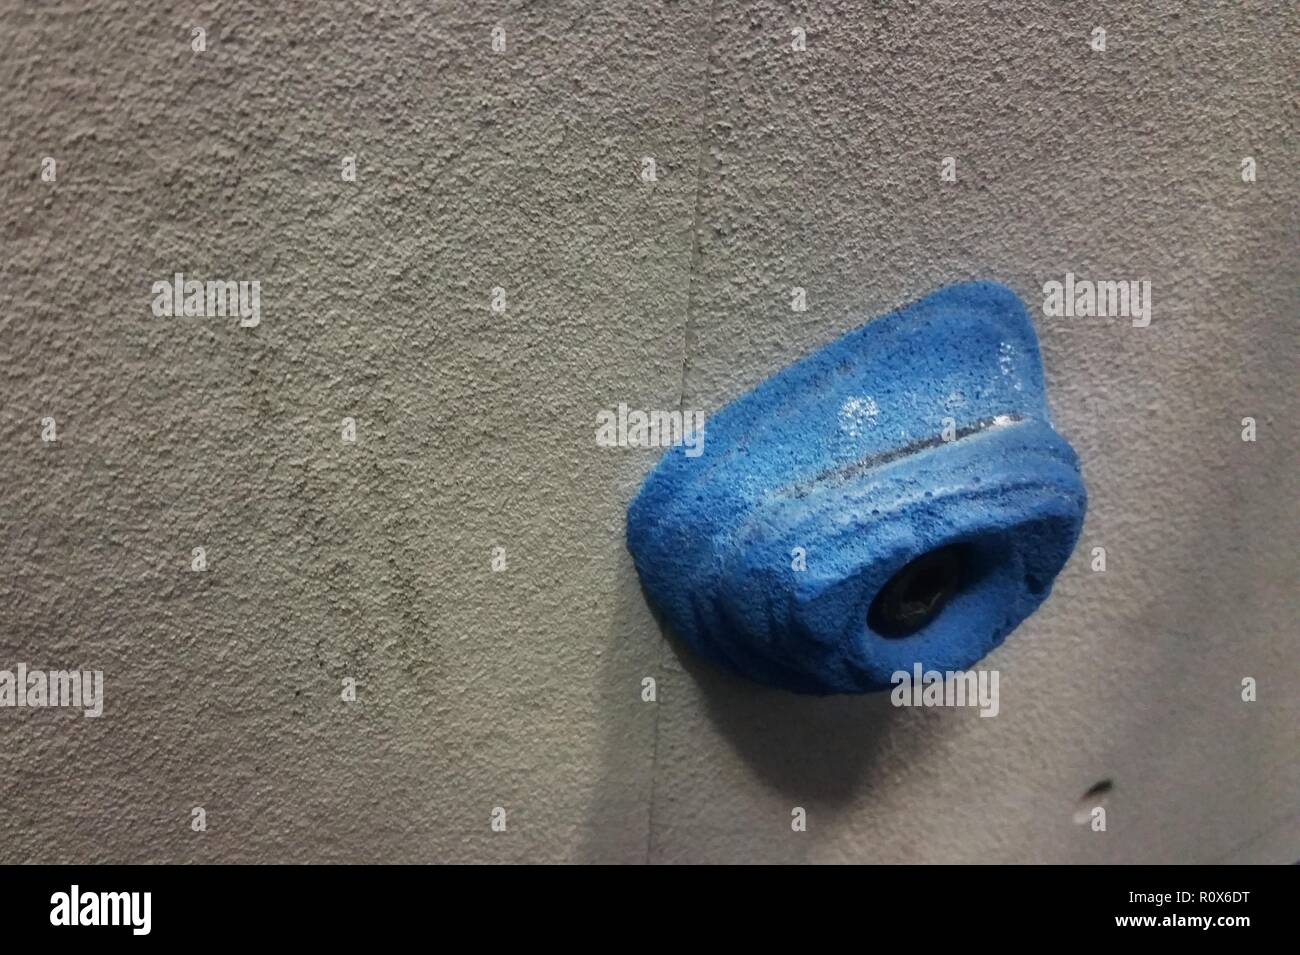 One blue rock climbing foothold against a grey wall - Stock Image